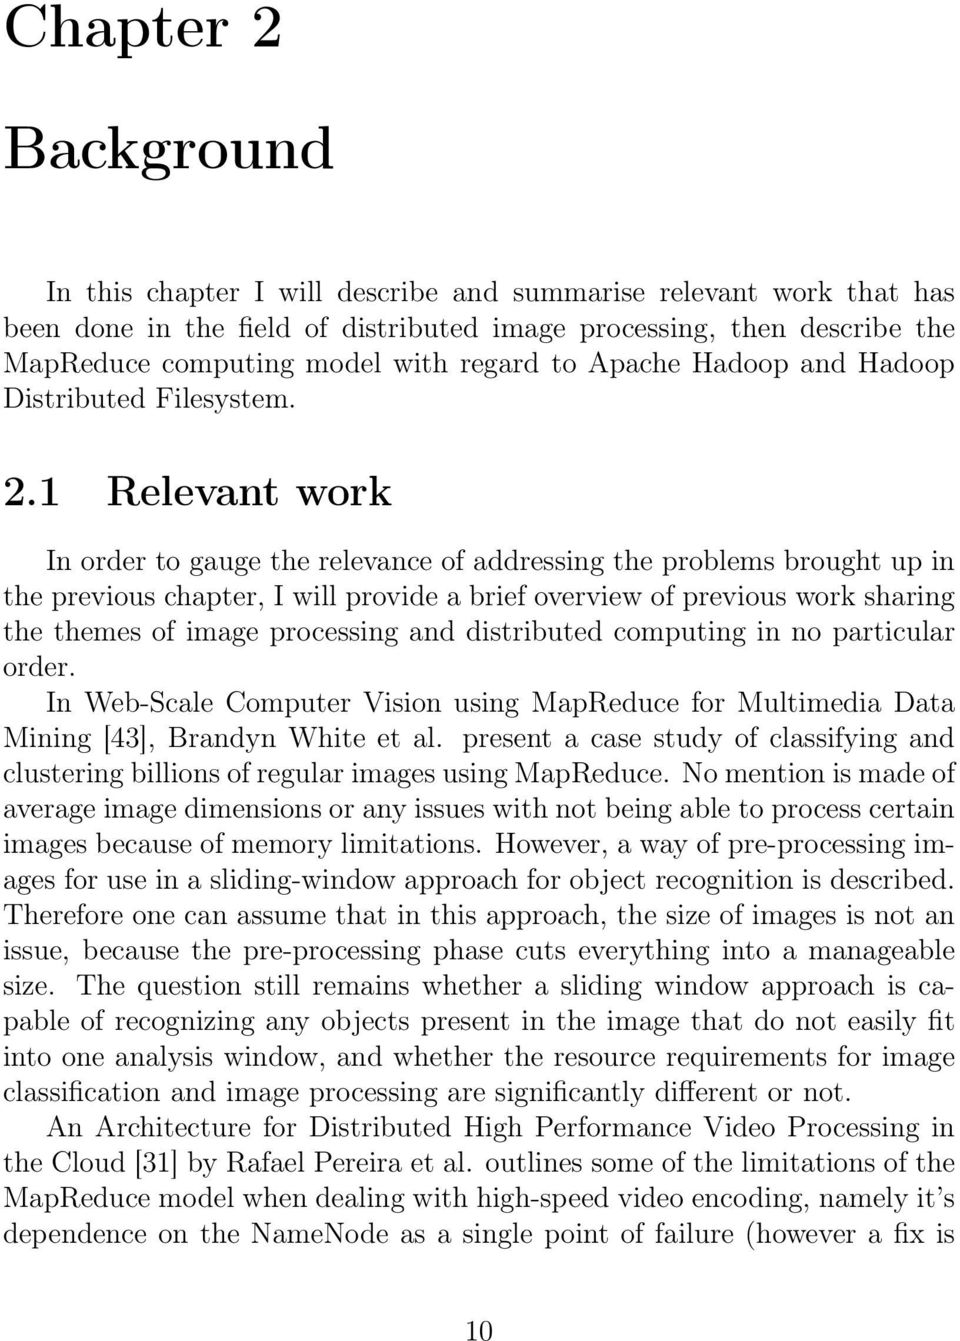 1 Relevant work In order to gauge the relevance of addressing the problems brought up in the previous chapter, I will provide a brief overview of previous work sharing the themes of image processing